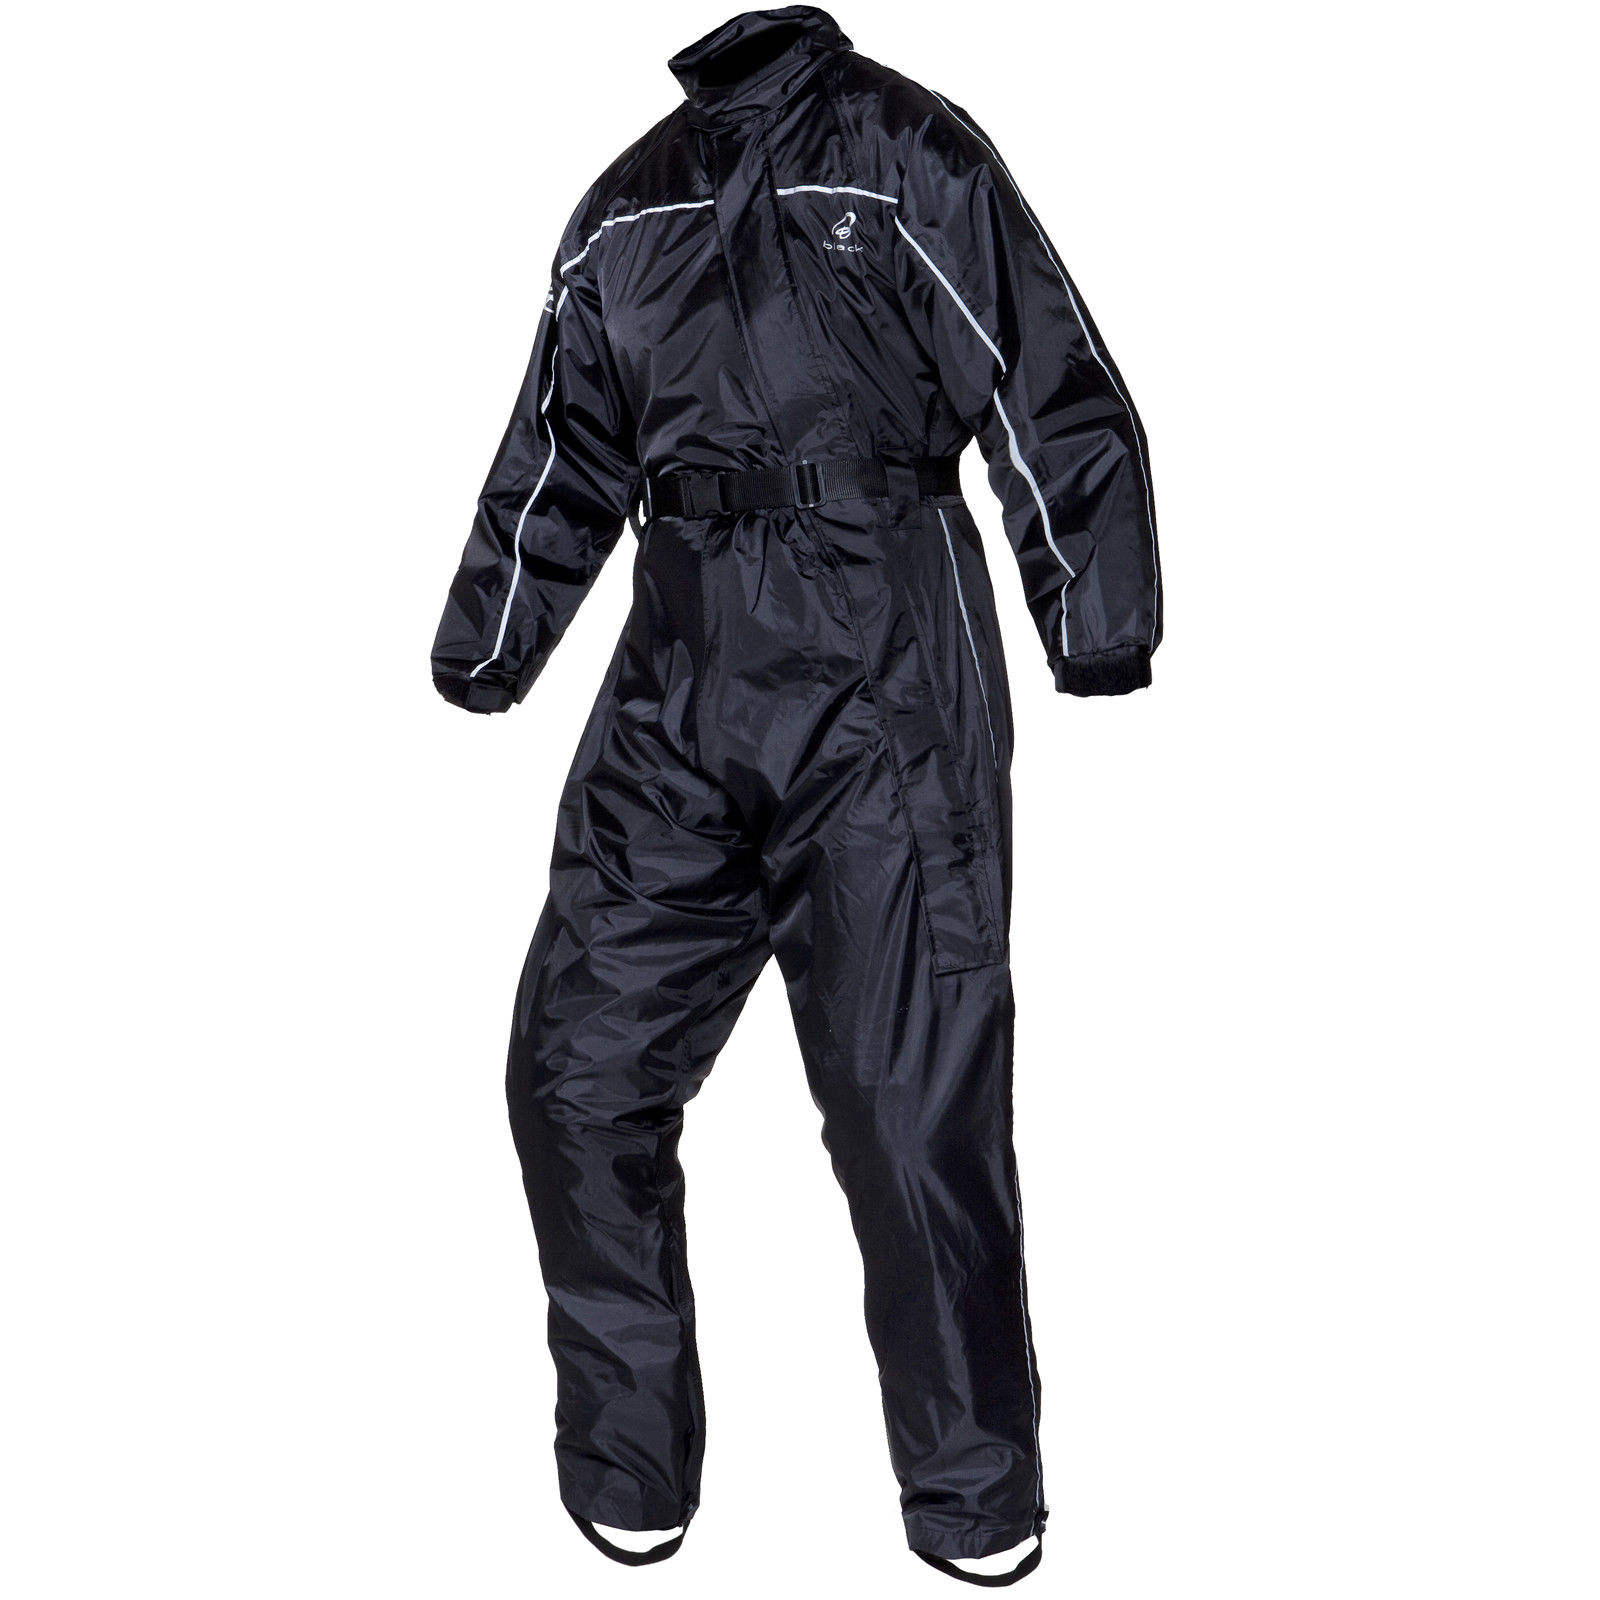 Raincoat For Motorcycle Rain Suit Rainsuits